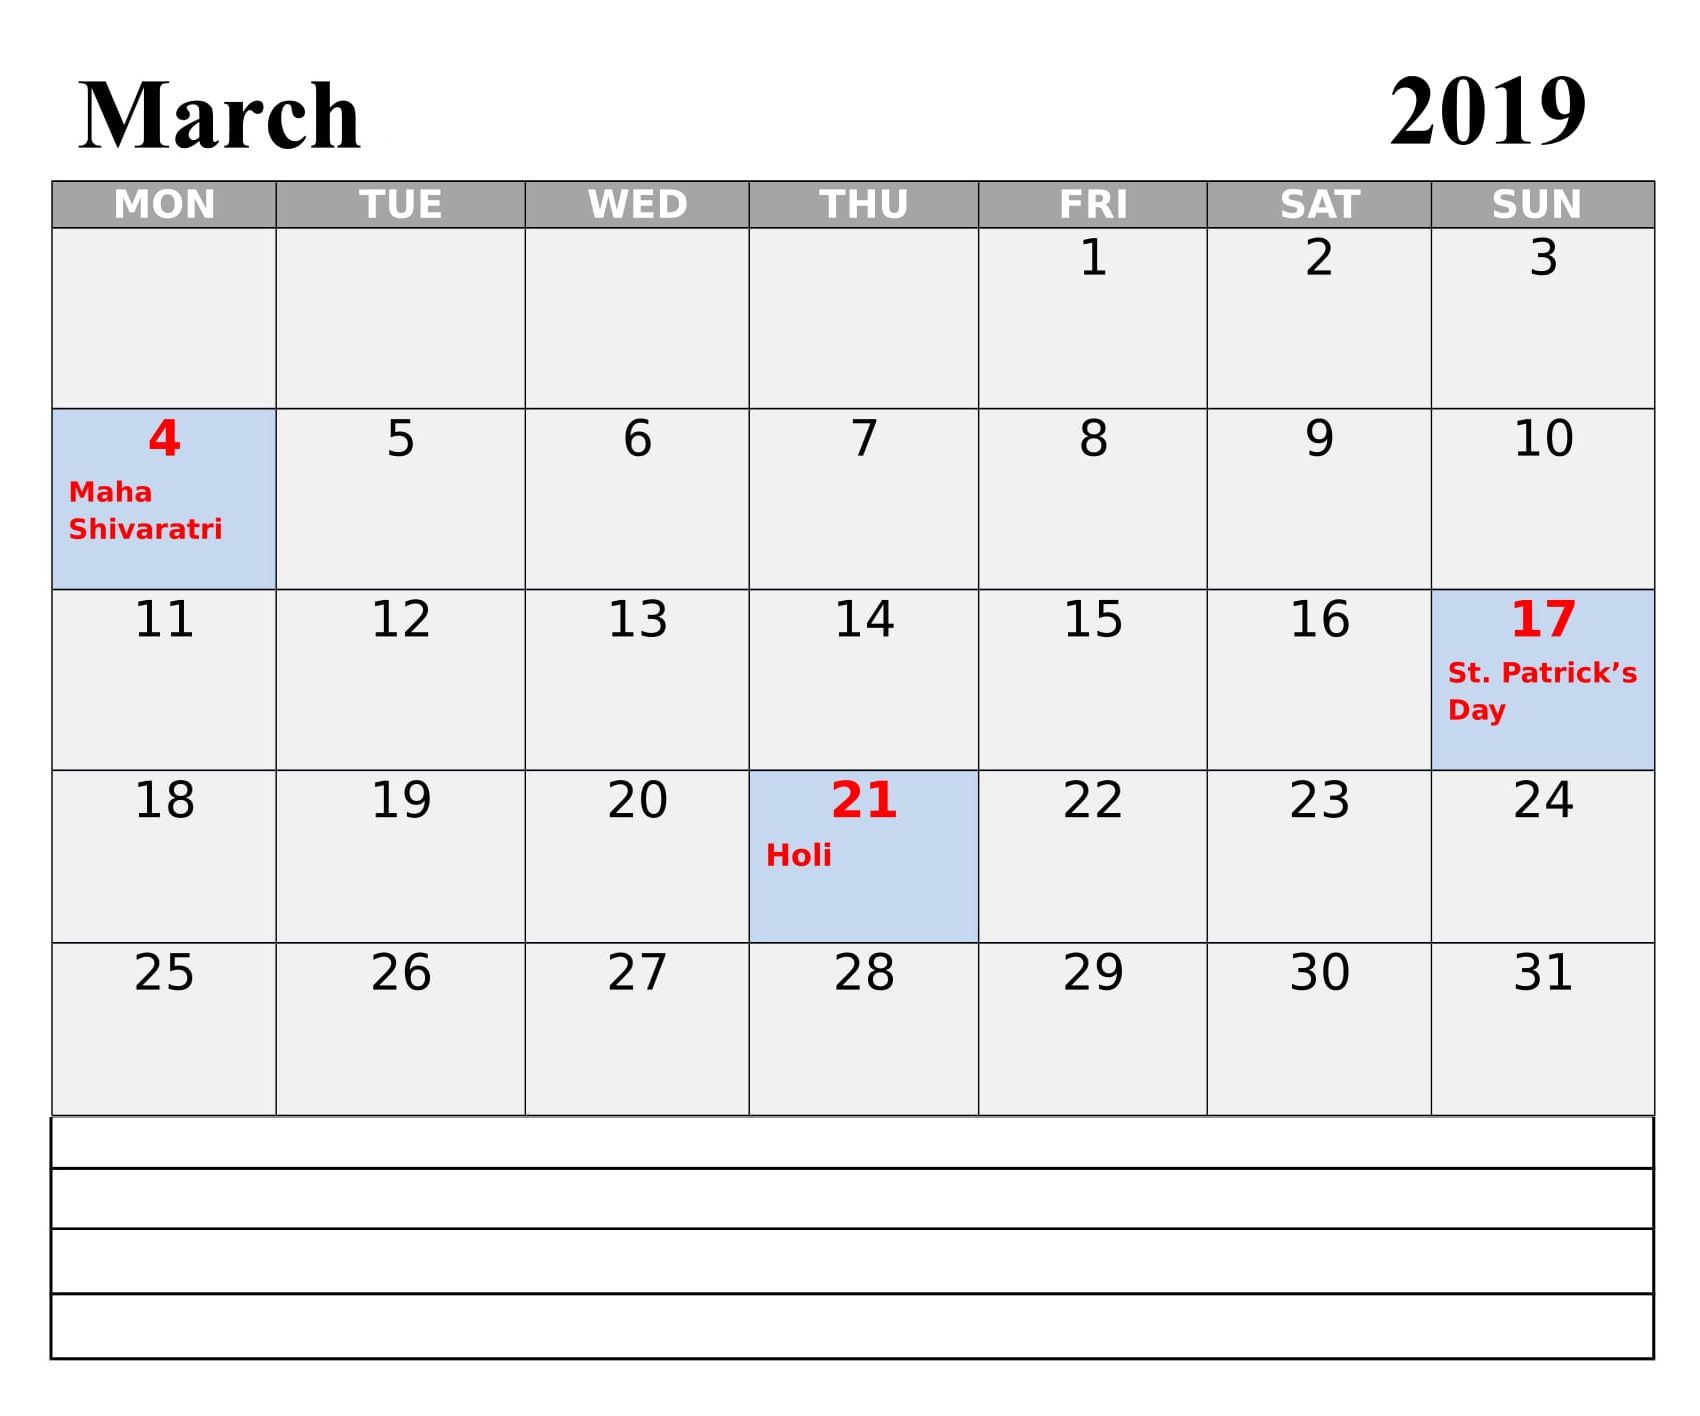 March Calendar With Canada Holidays 2019 2019 Calendar Holiday